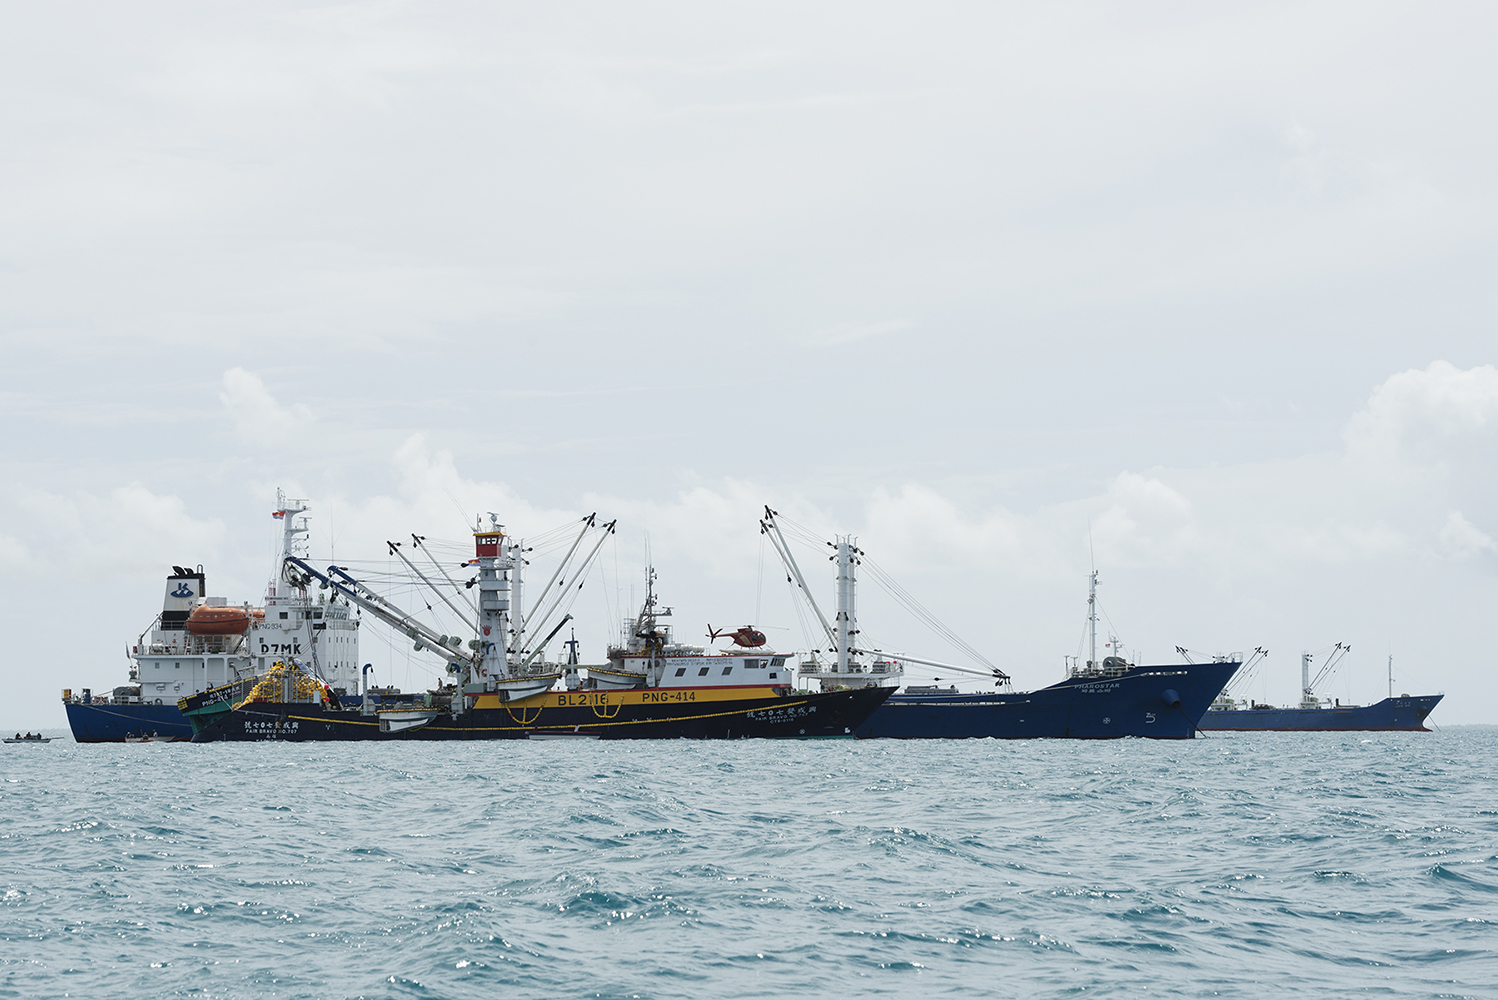 Betio, Tarawa Island, Kiribati, Pacific Ocean Purse seine fishing vessel FAIR BRAVO NO.707 from Taiwan, outside the harbour of Betio on Tarawa Island transhipping tuna to the South Korean reefter PHAROSTAR . The helicopter is used to search for tuna schools.